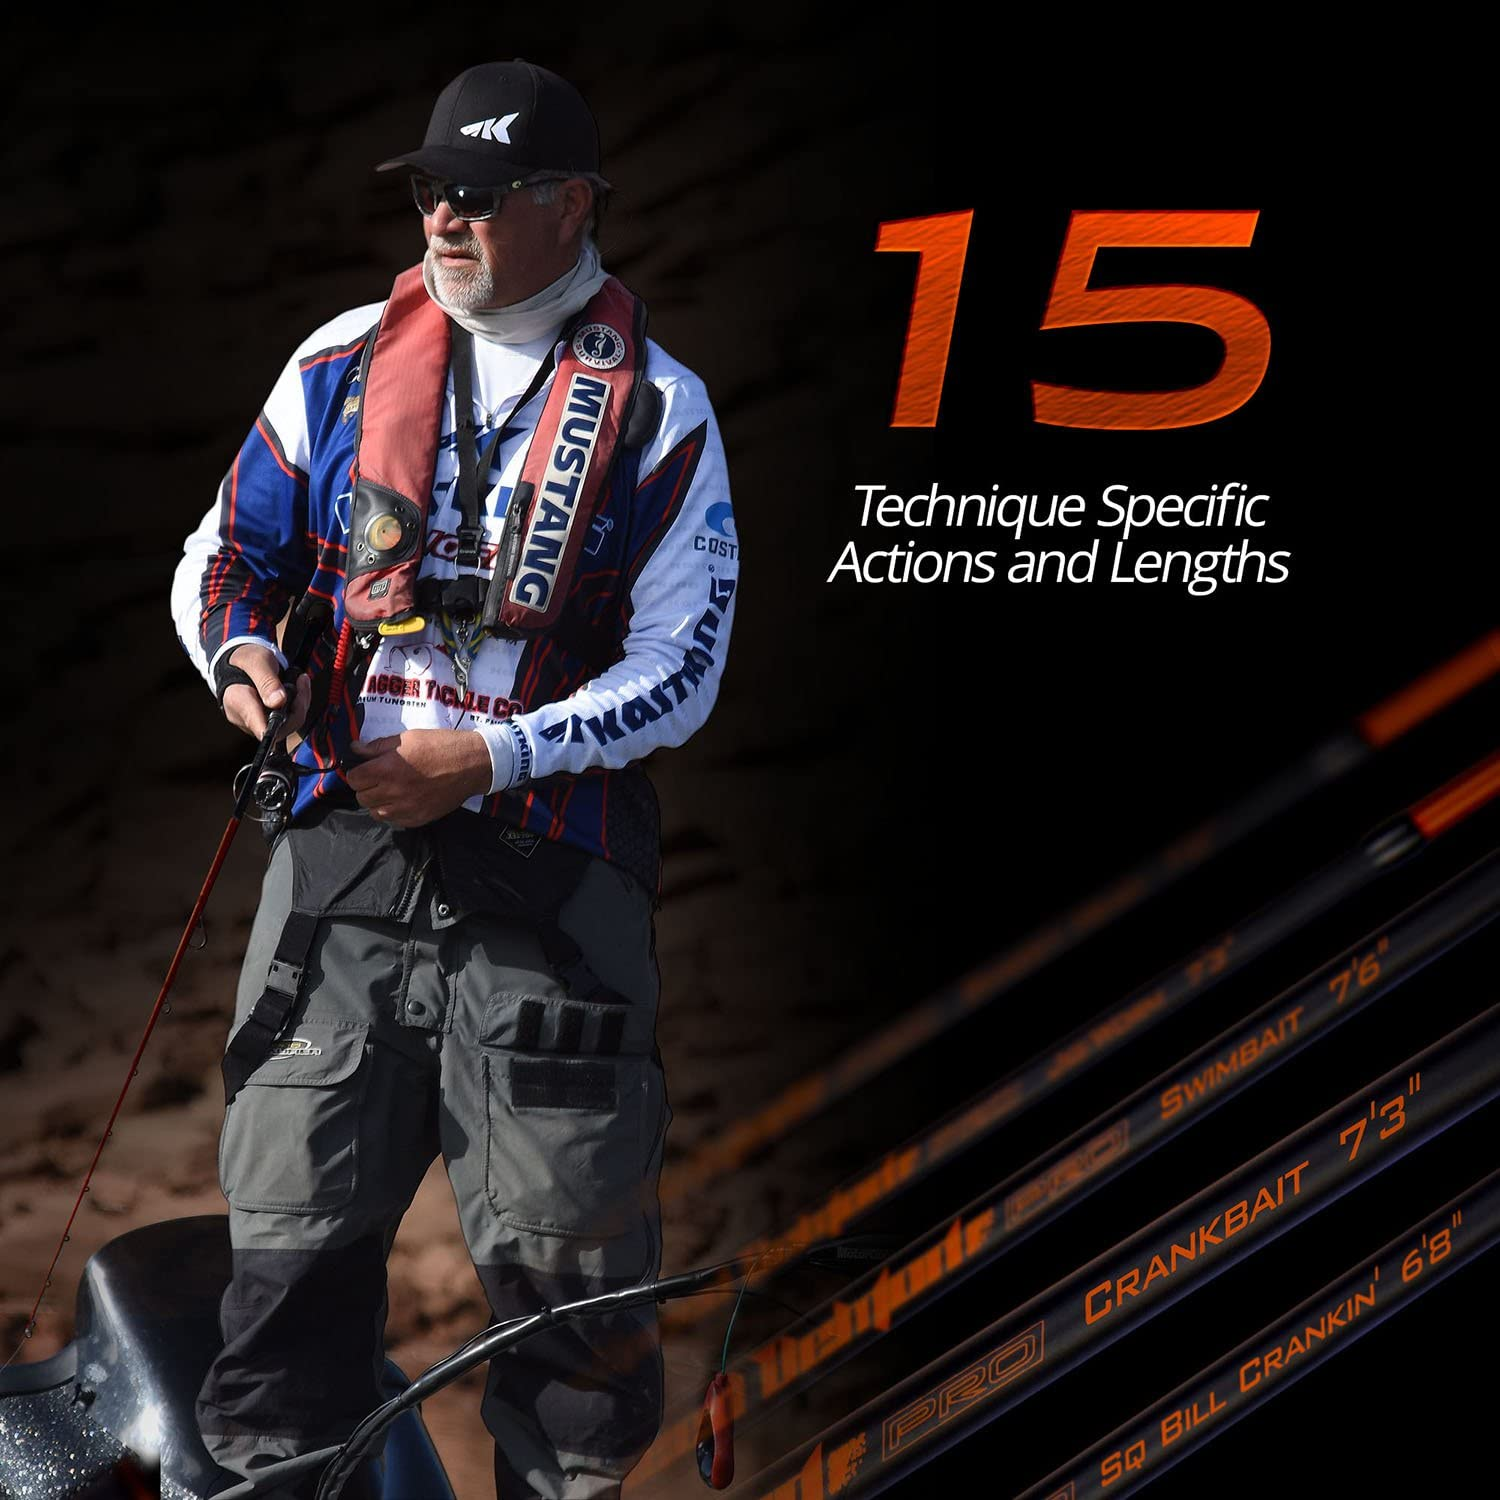 KastKing Speed Demon Pro Tournament Series Bass Fishing Rods Elite Carbon High Modulus 1 Pc Blanks 15 Technique Specific Lengths /& Actions-Spinning /& Casting Fuji Guides /& Reel Seats Winn Grip